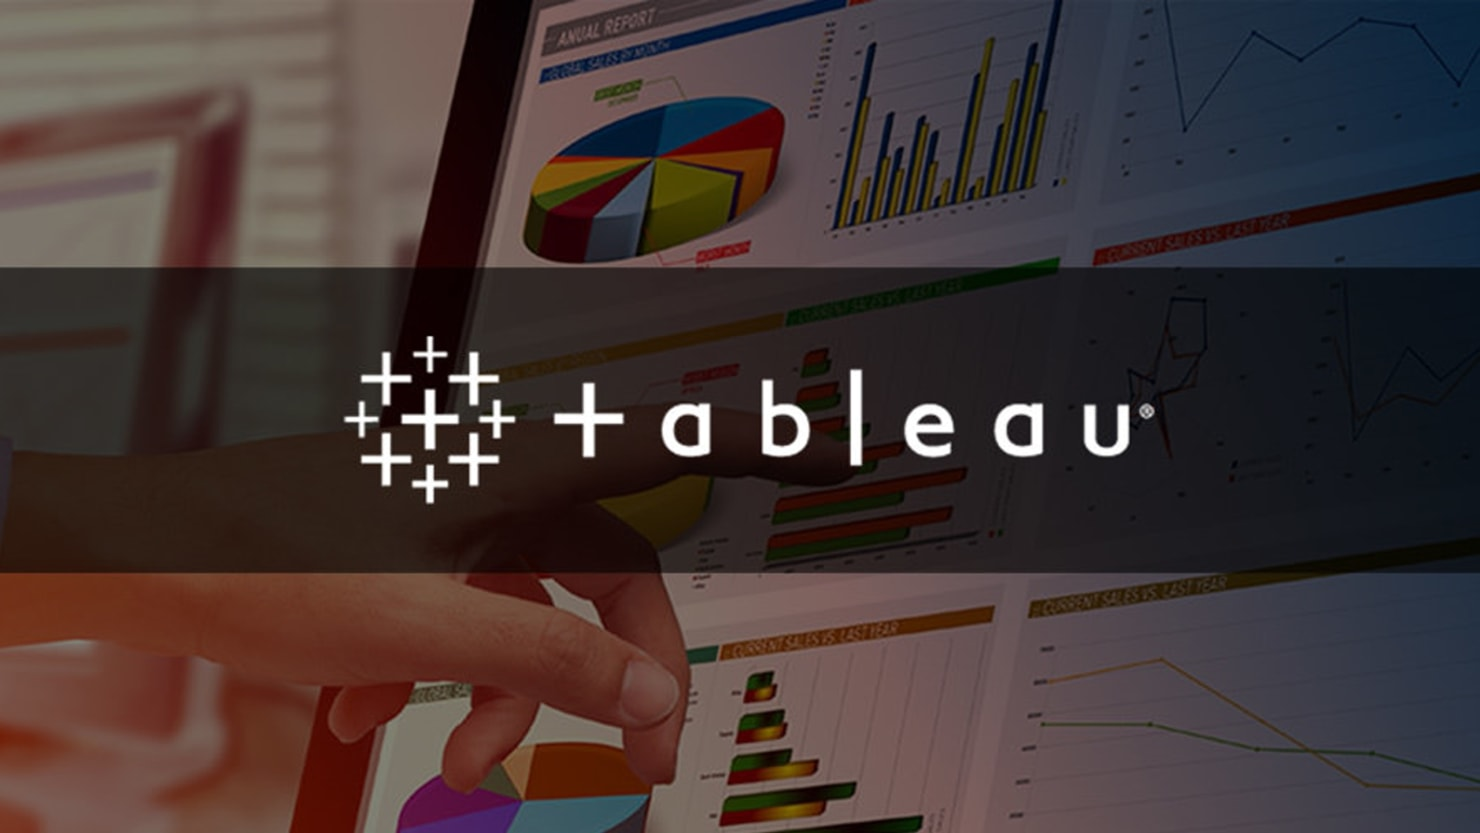 Tableau Is The Tool For All Your Data Crunching And Analyzing Needs